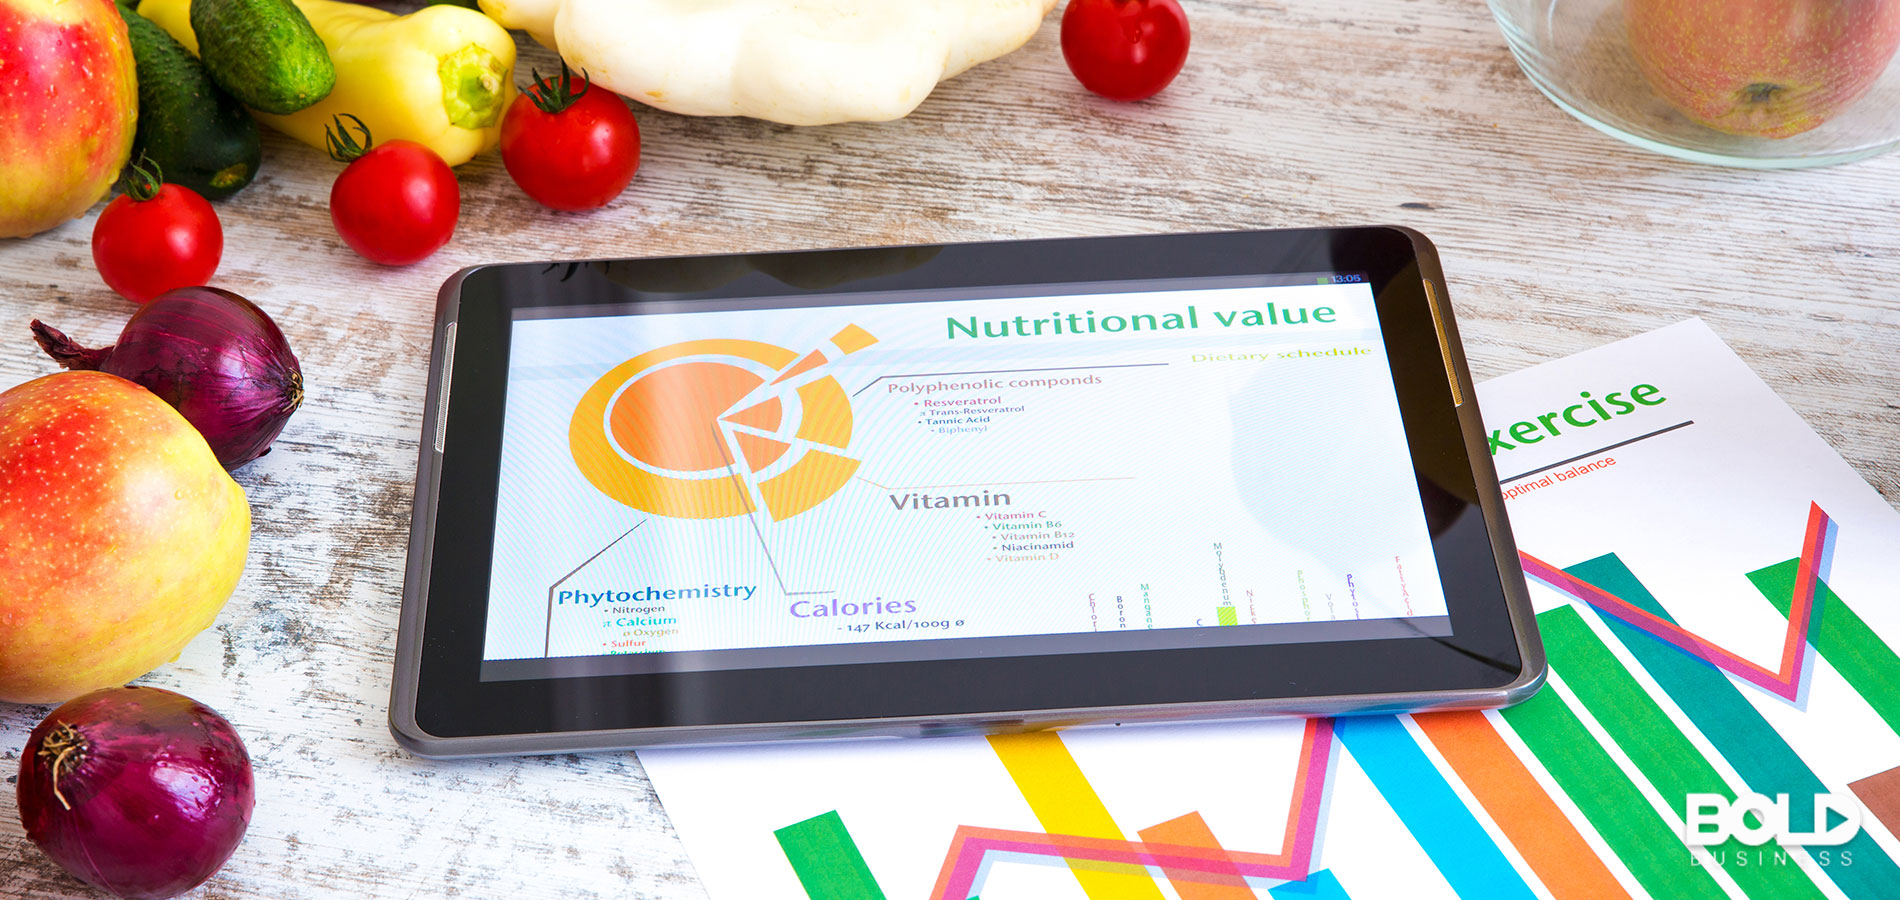 A virtual weight loss app on a tablet, which is on a table full of food